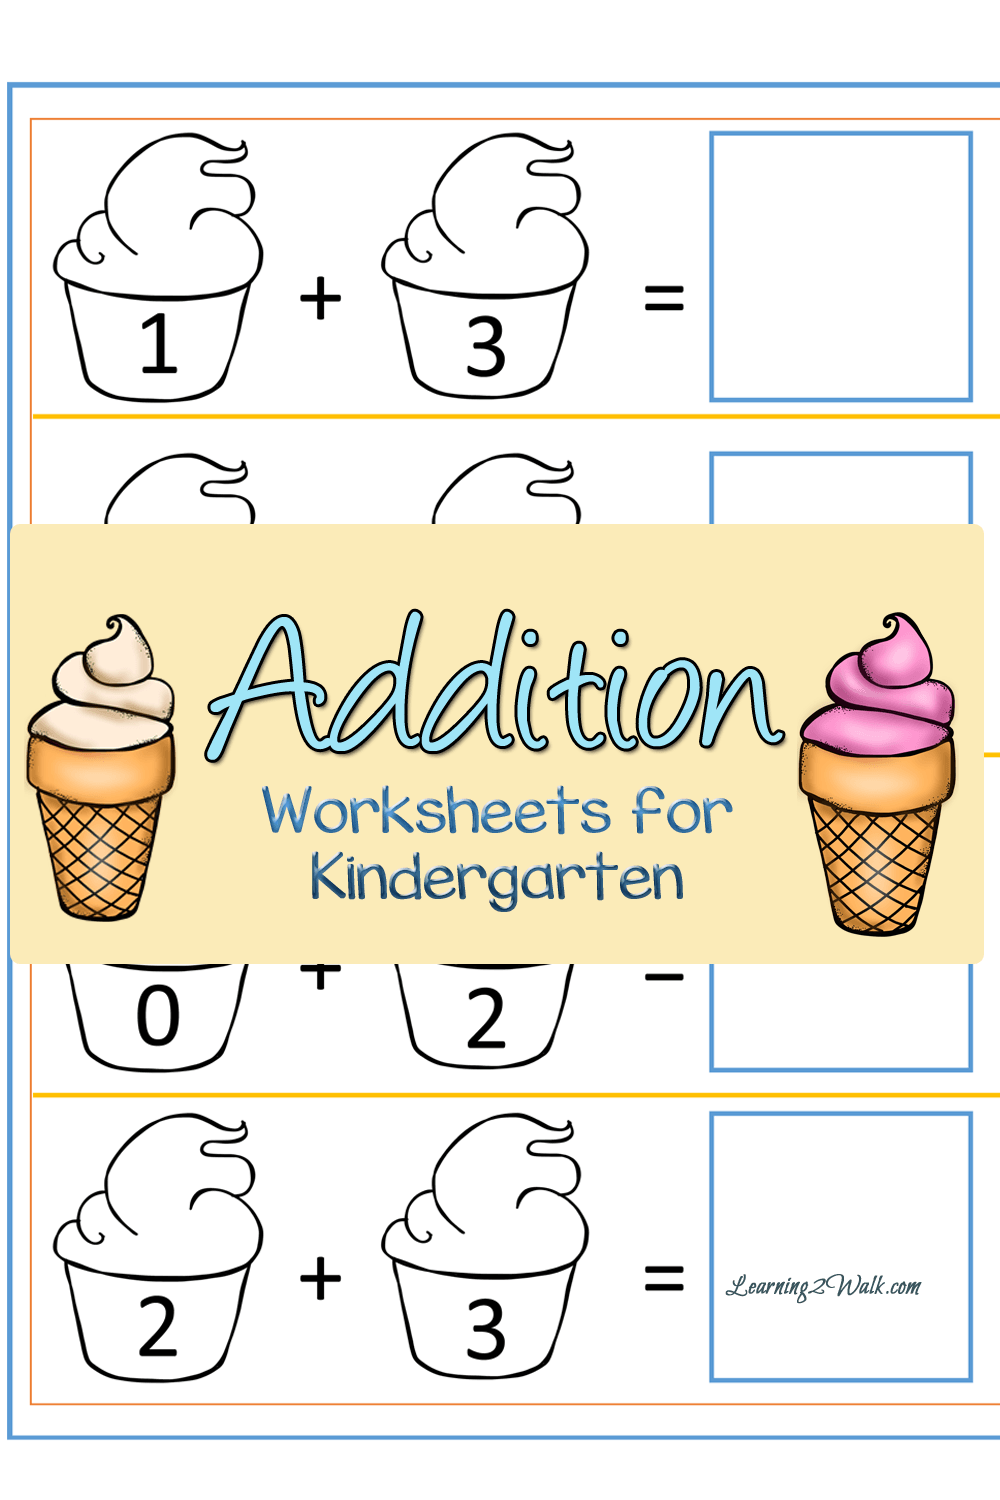 Ice Cream Addition Worksheets For Kindergarten That Your